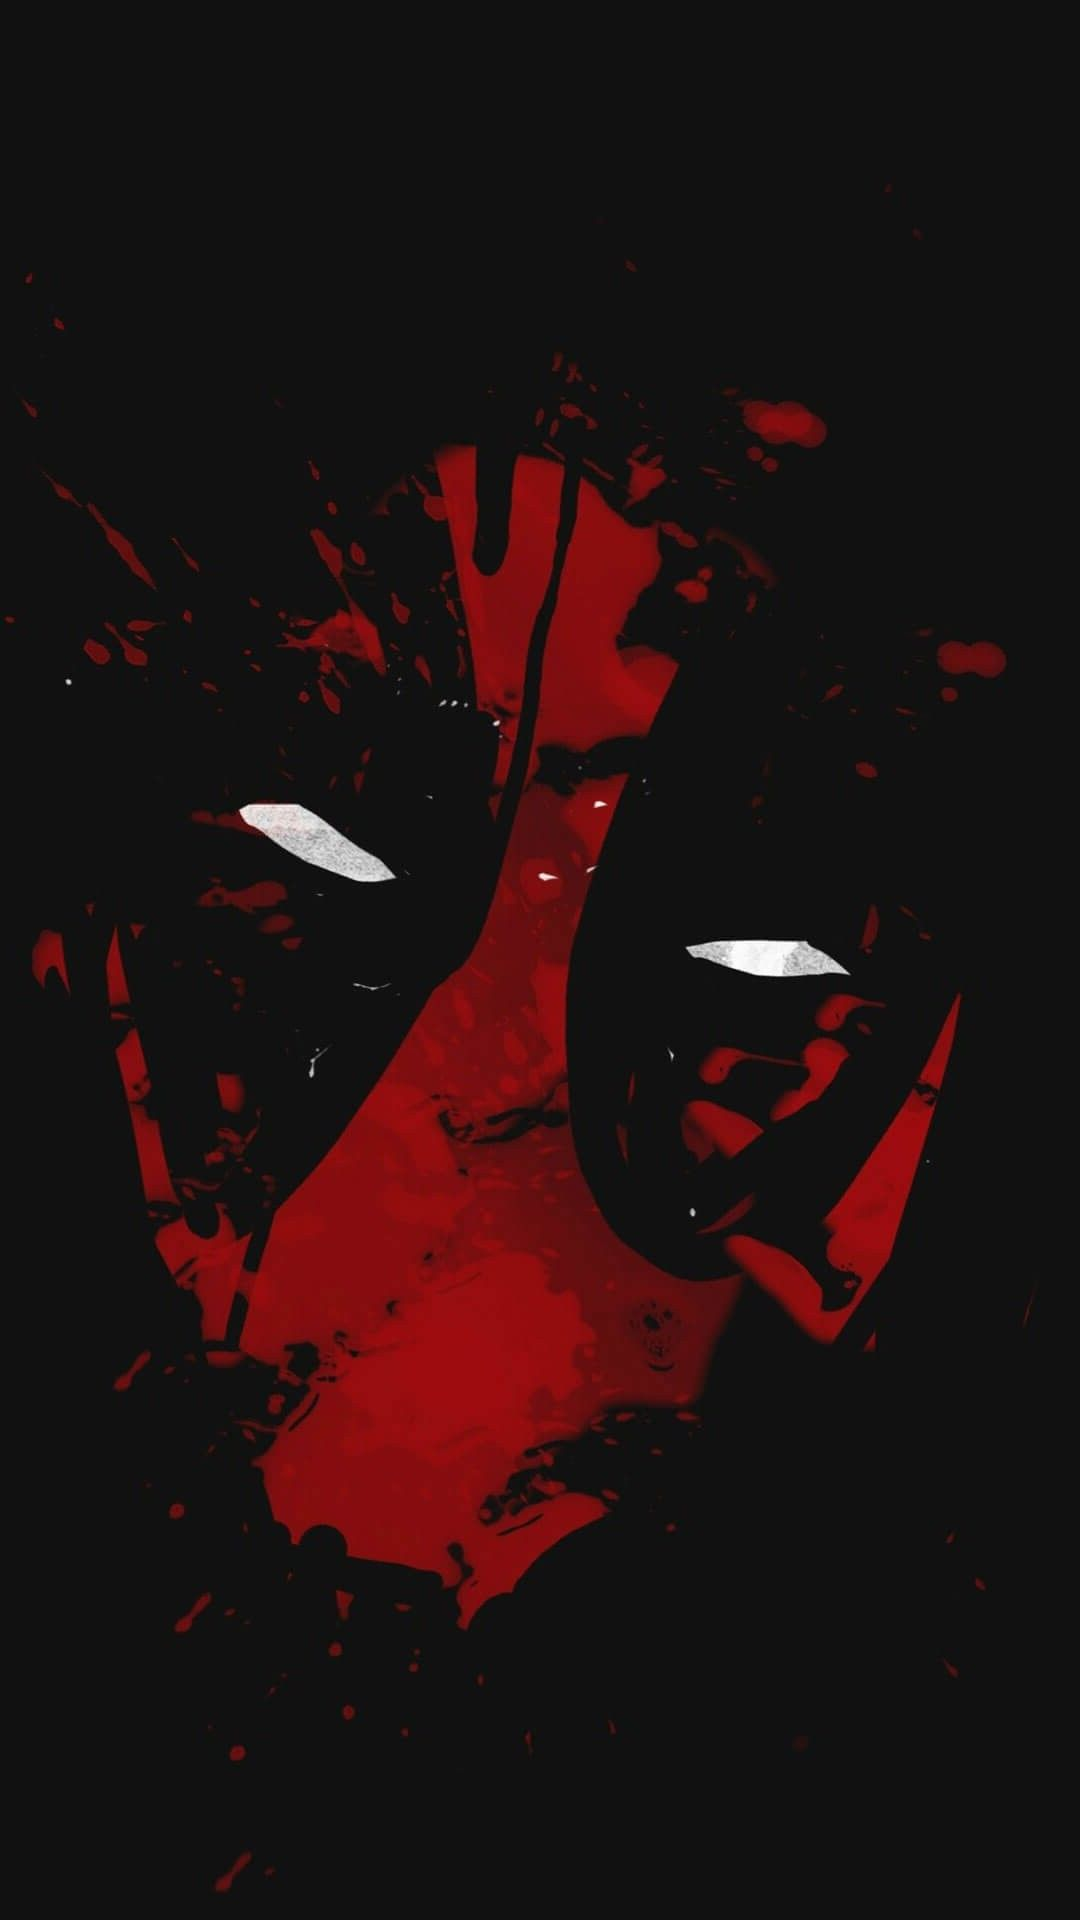 Deadpool Wallpaper Iphone Deadpool Pinterest Mobile Wallpaper